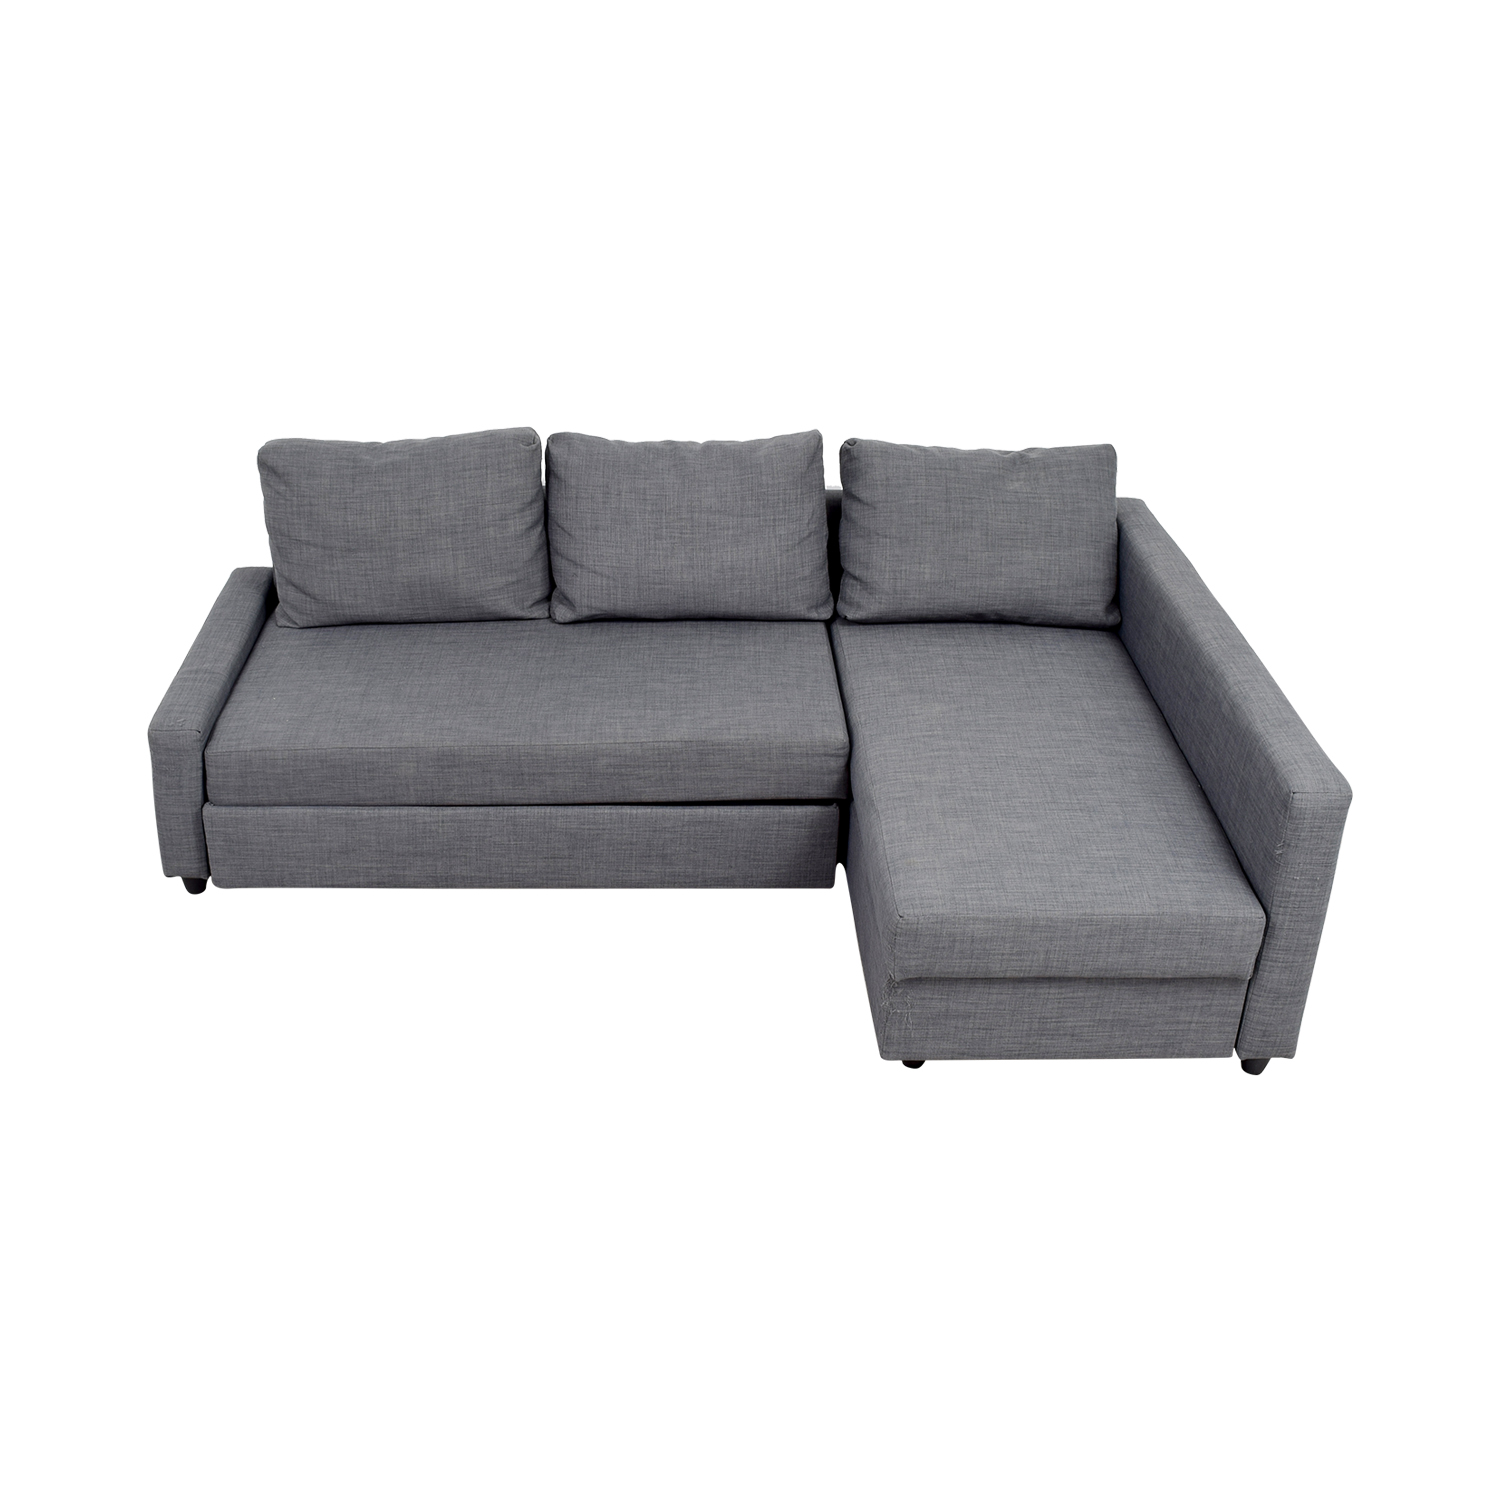 IKEA IKEA Grey Sleeper Chaise Sectional used